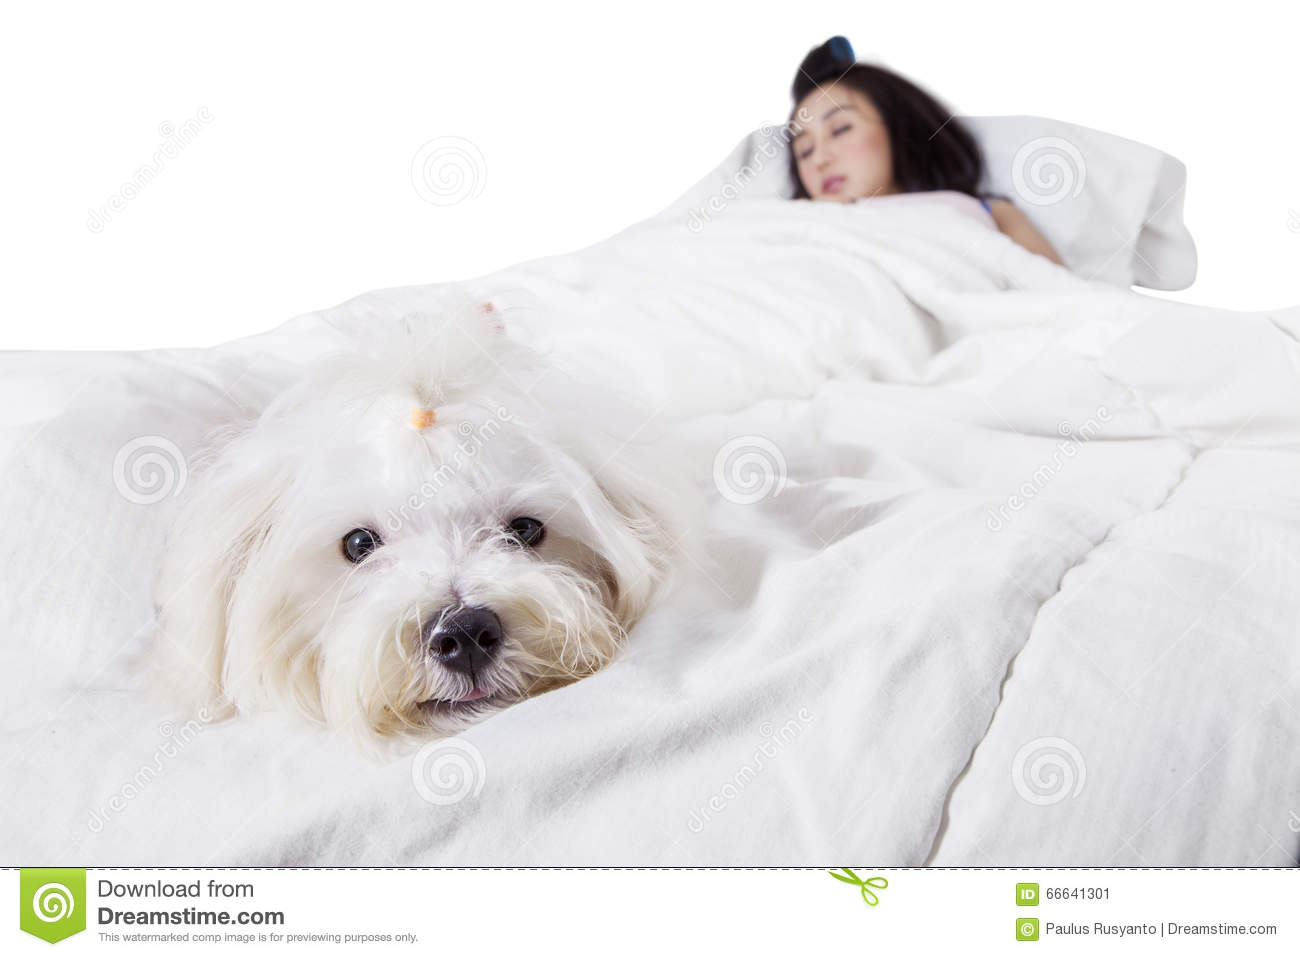 Dog Sleeping In Owners Bed With Owner